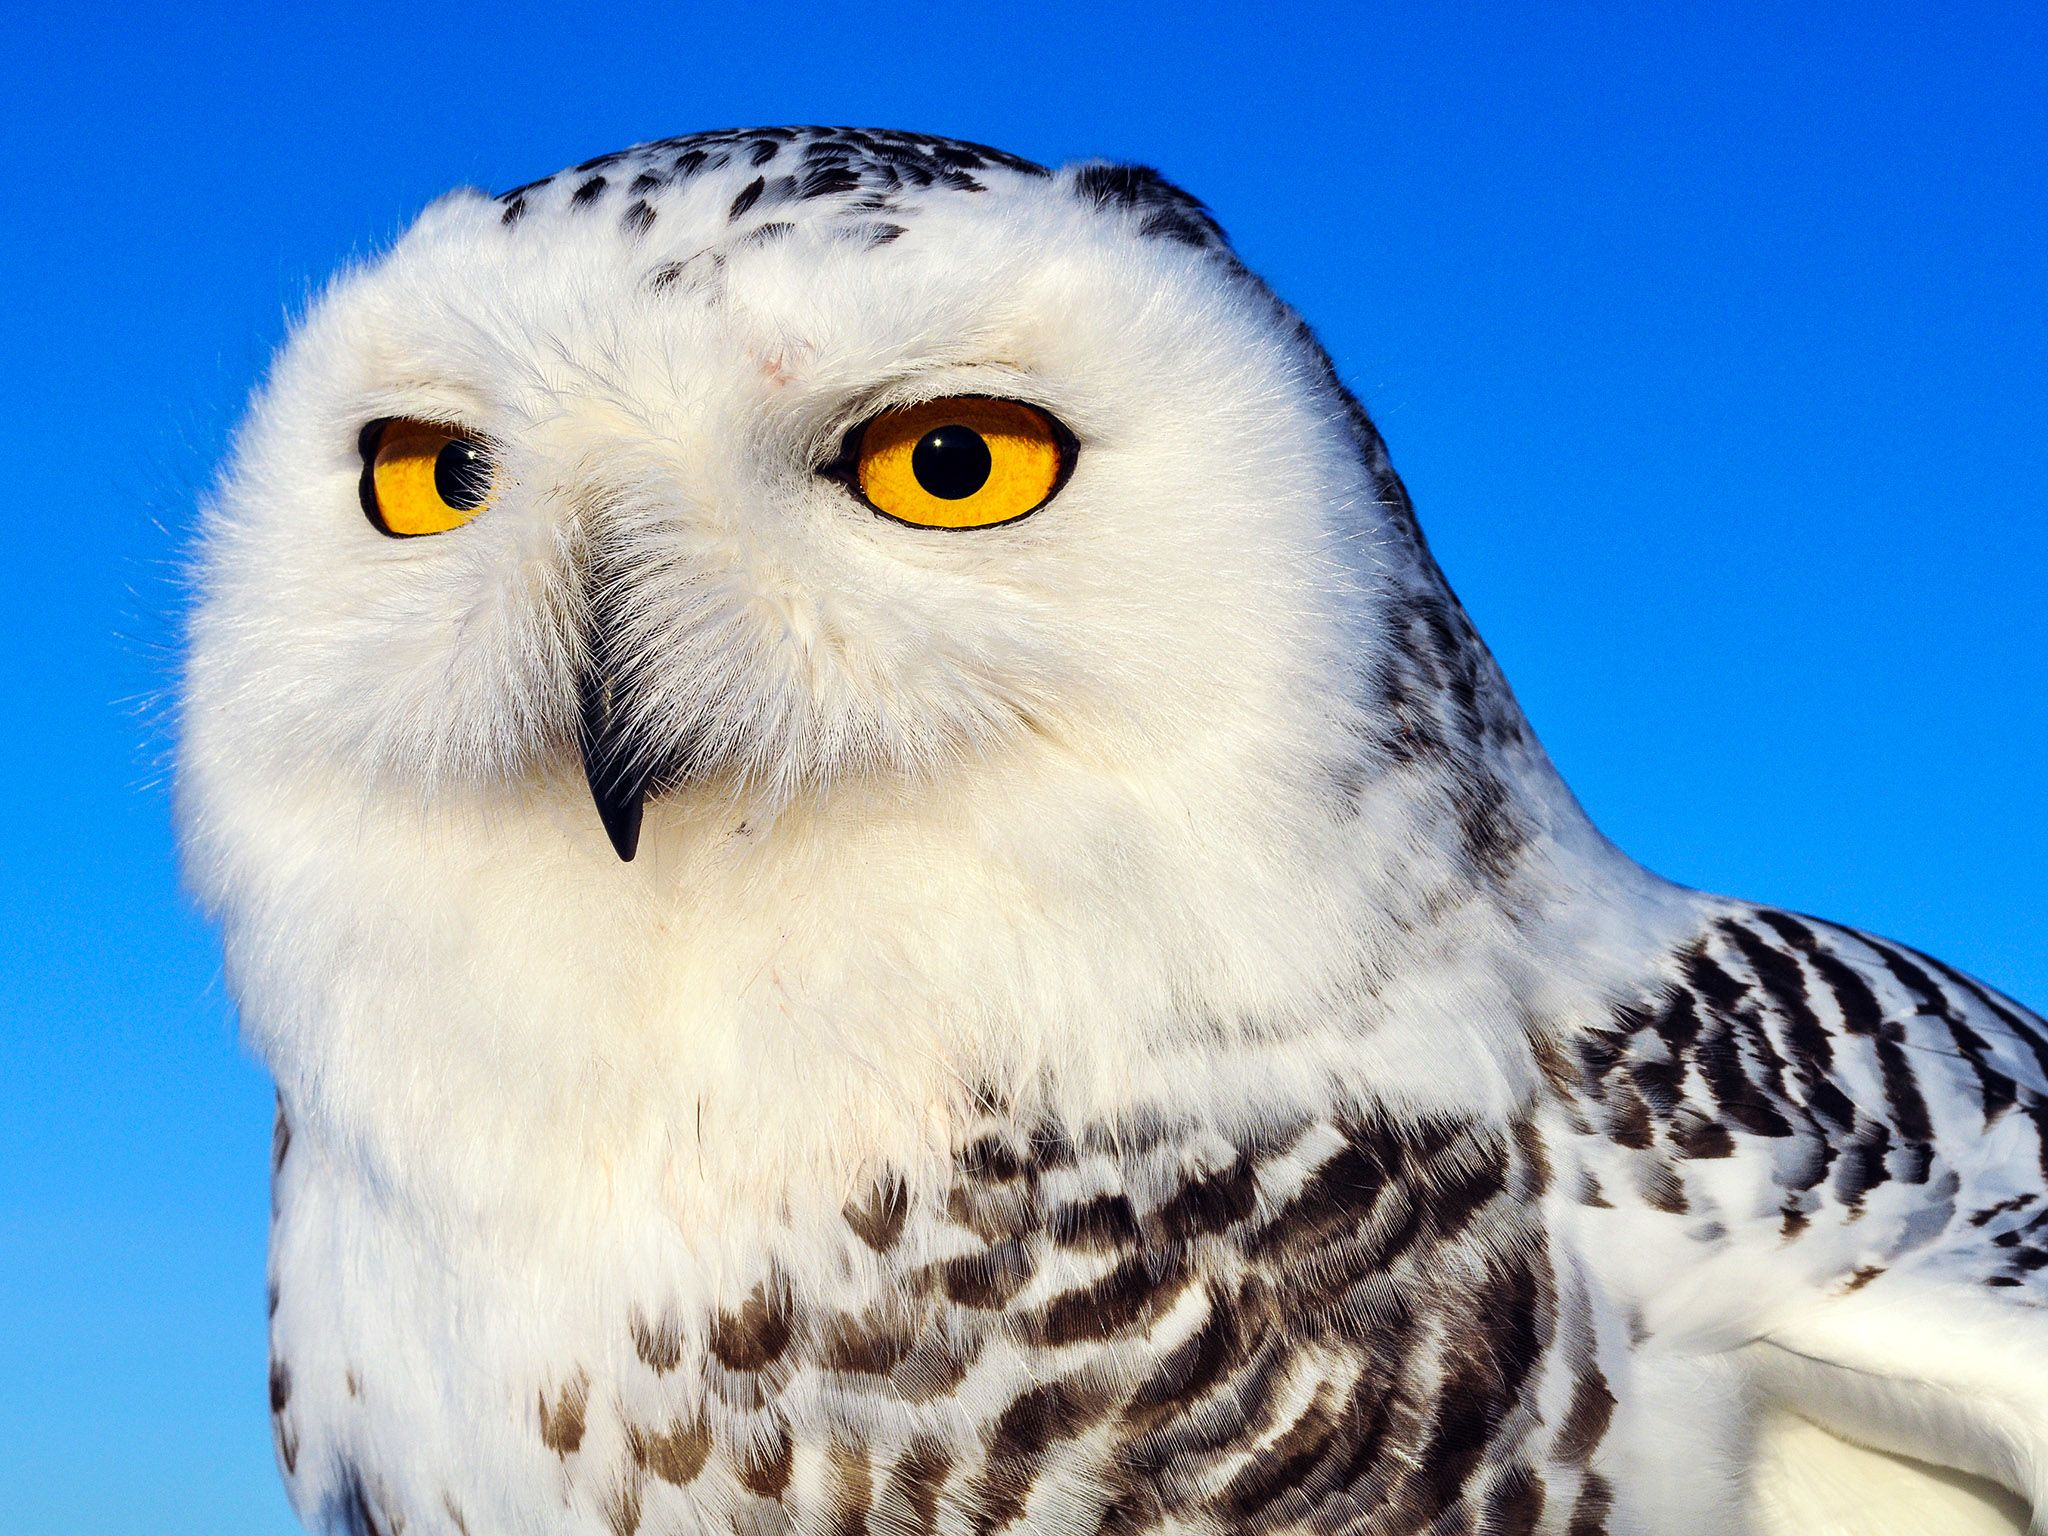 Portrait d'un hibou des neiges. Cette image est issue de Destination Wild Canada. [Photo of the day - octobre 2014]